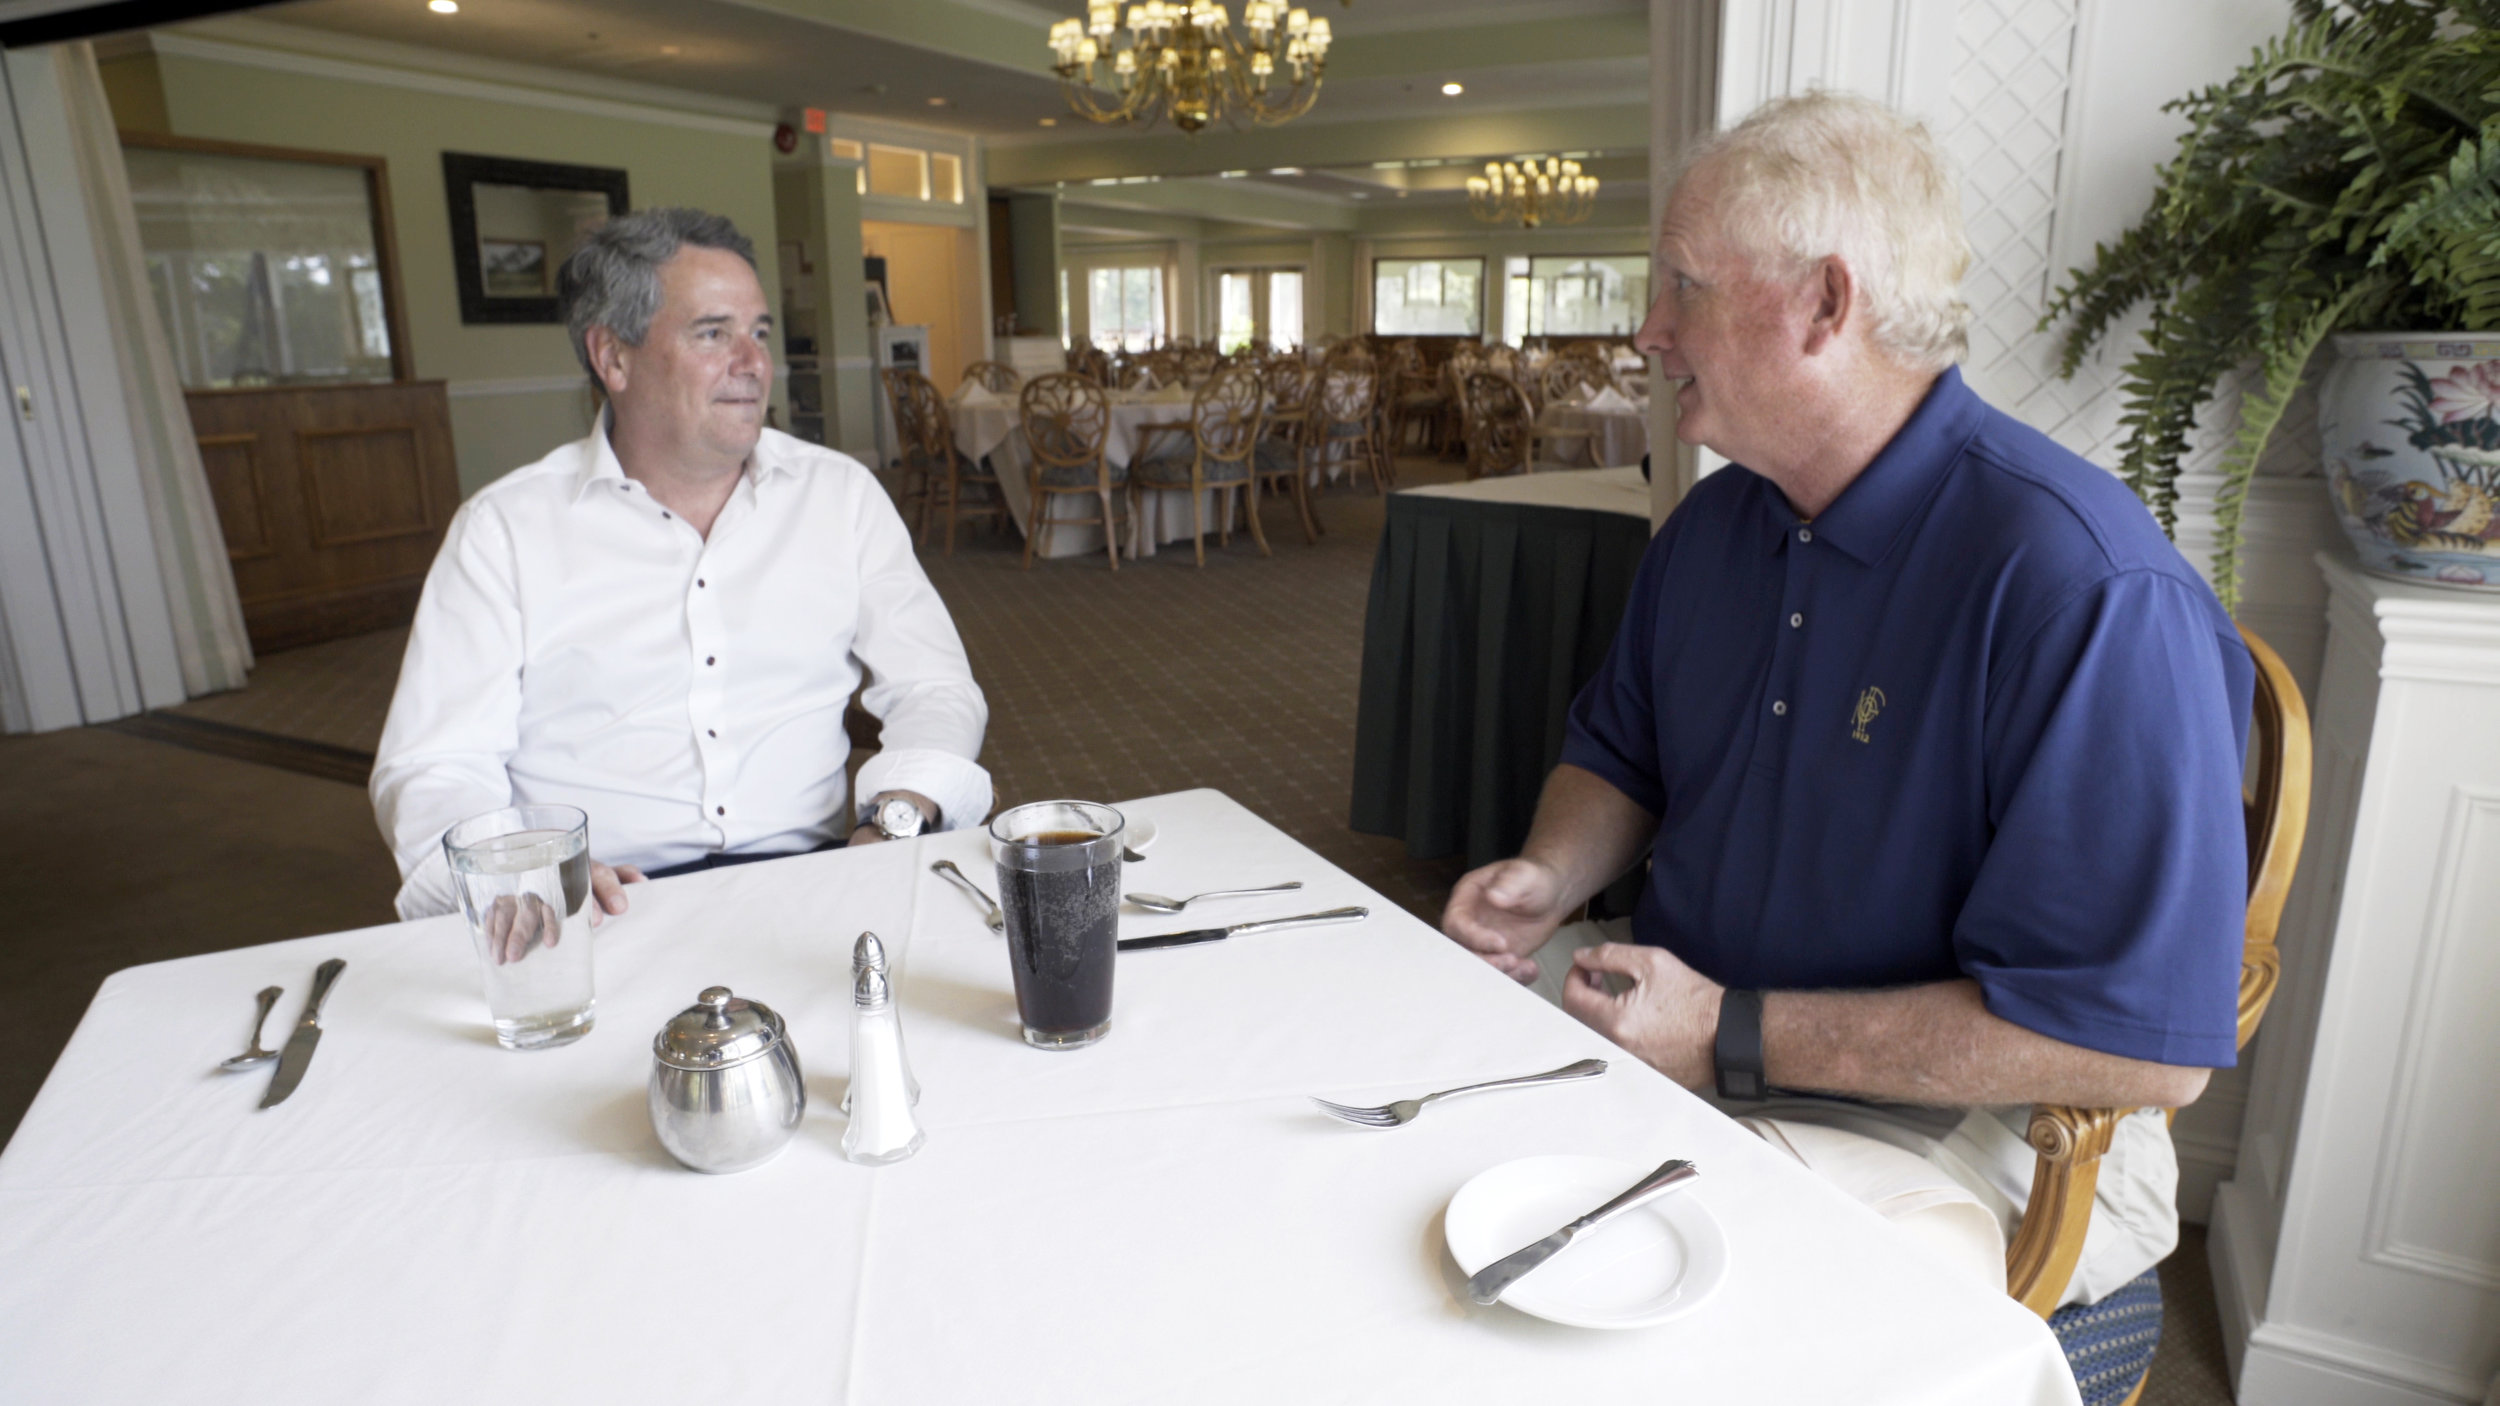 Kevin meeting with a client over lunch.